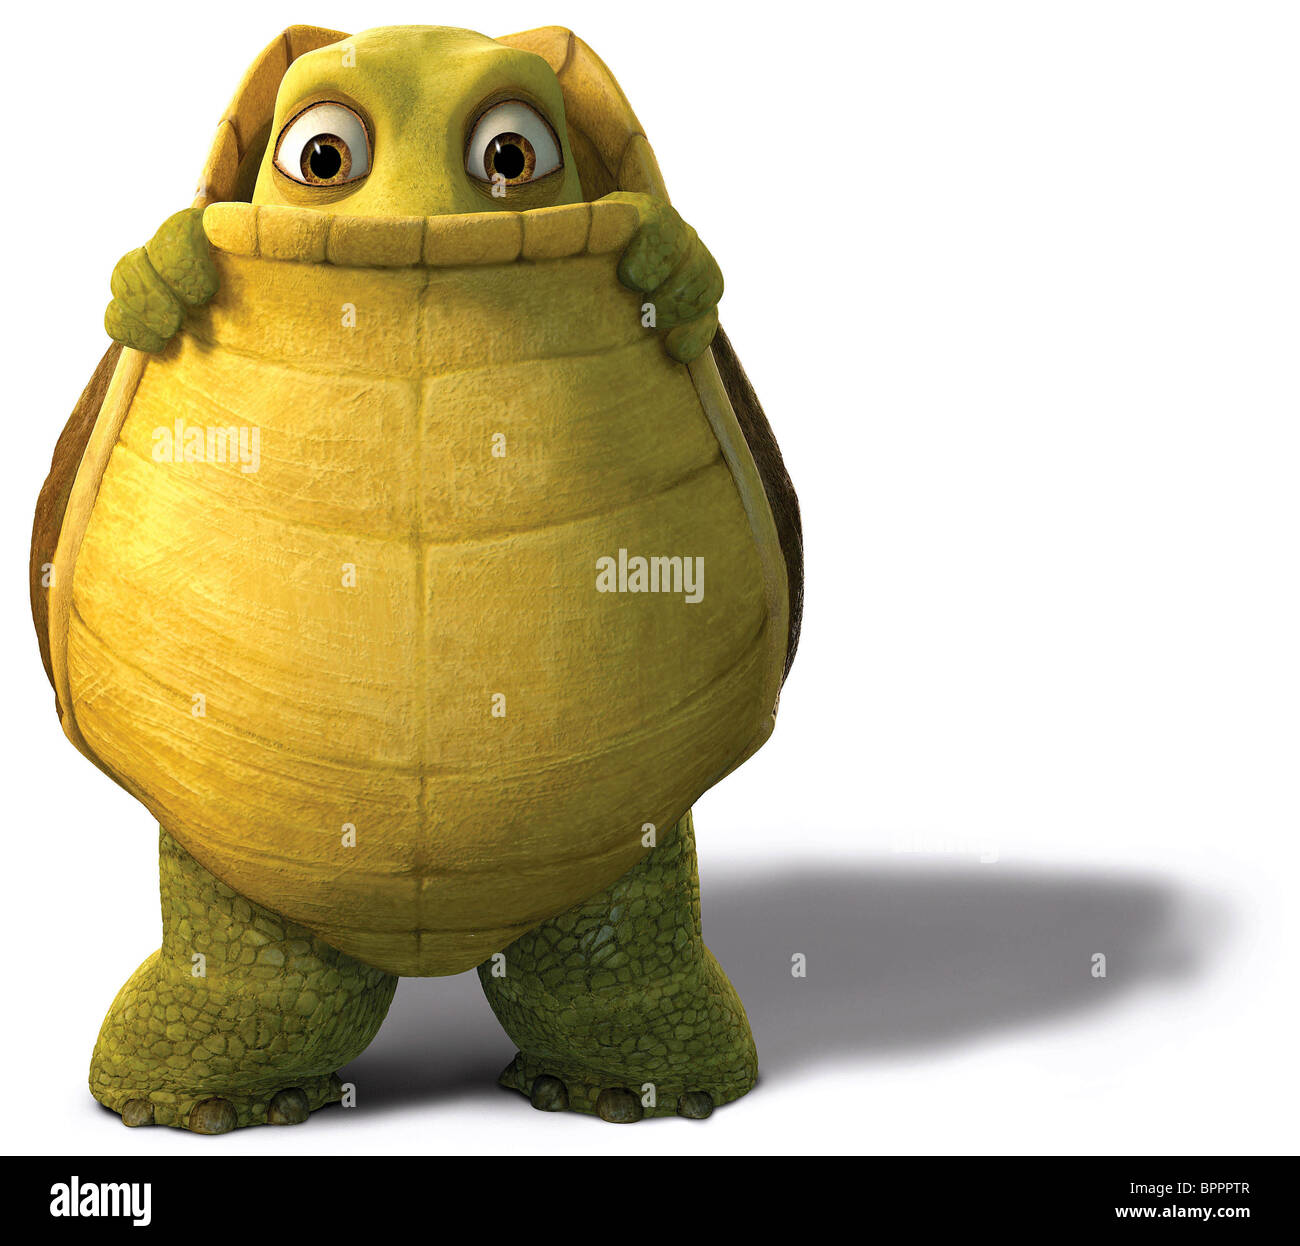 Uncategorized Verne The Turtle verne over the hedge 2006 stock photo royalty free image 2006